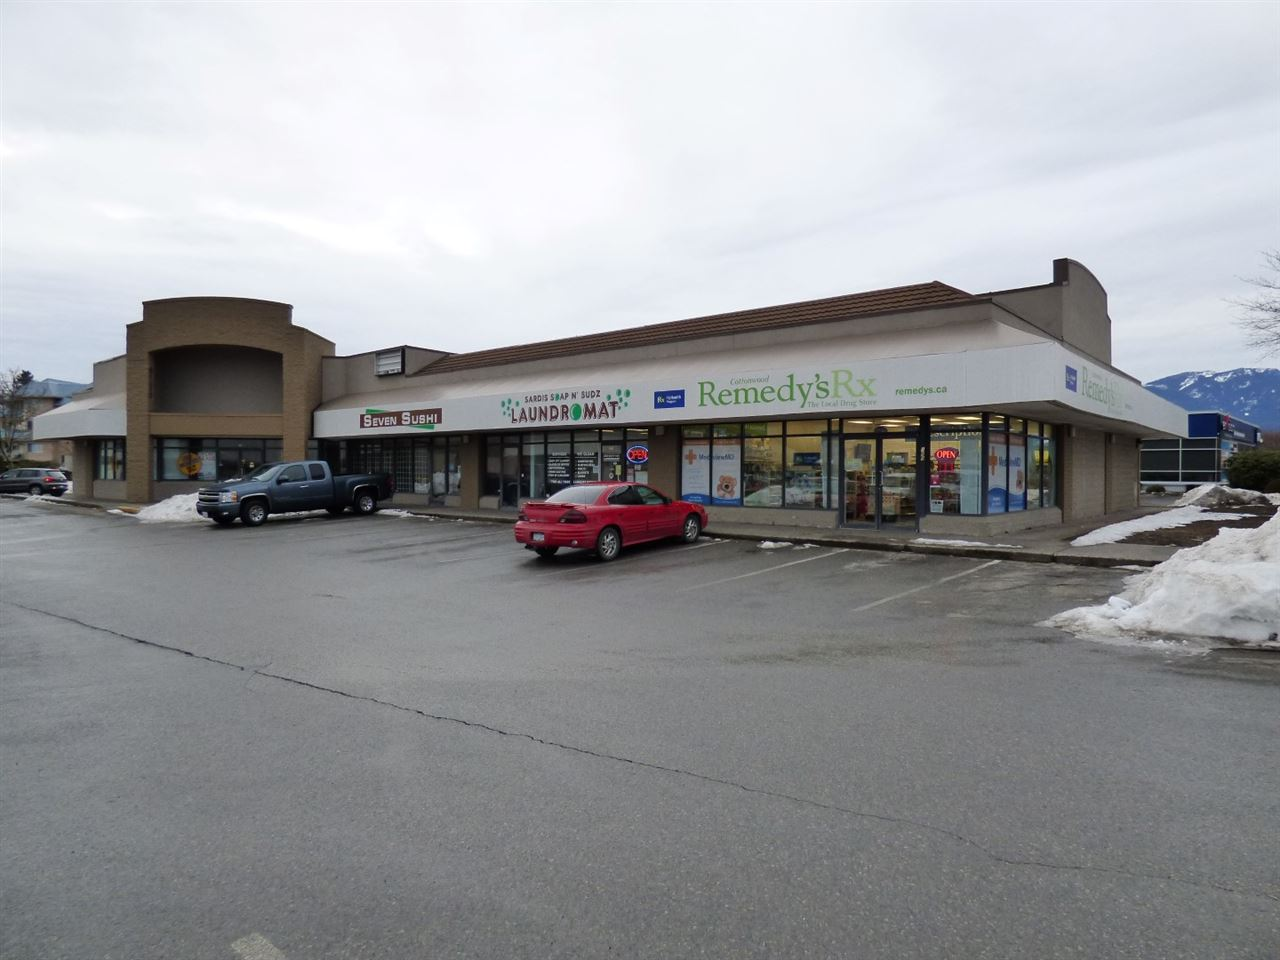 Main Photo: 45428 LUCKAKUCK Way in Chilliwack: Sardis West Vedder Rd Retail for sale (Sardis)  : MLS(r) # C8010304